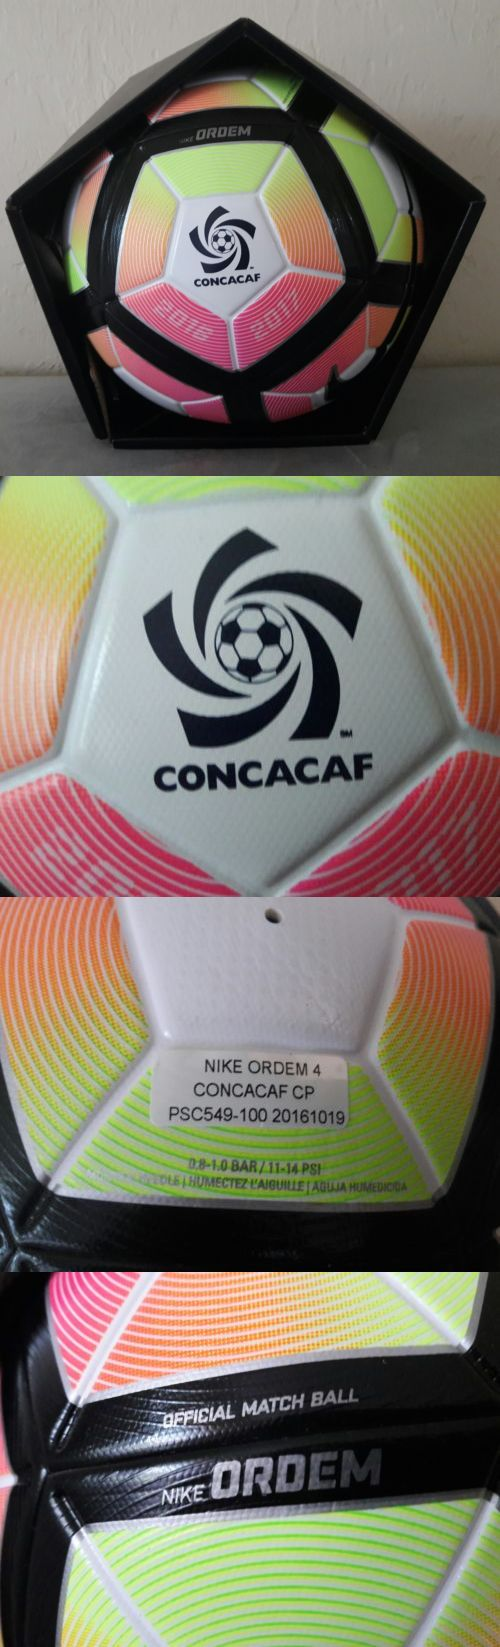 Balls 20863: Nike Ordem 4 Official Fifa Match Promo Soccer Ball Concacaf Psc549 100 Size 5 -> BUY IT NOW ONLY: $49.99 on eBay!